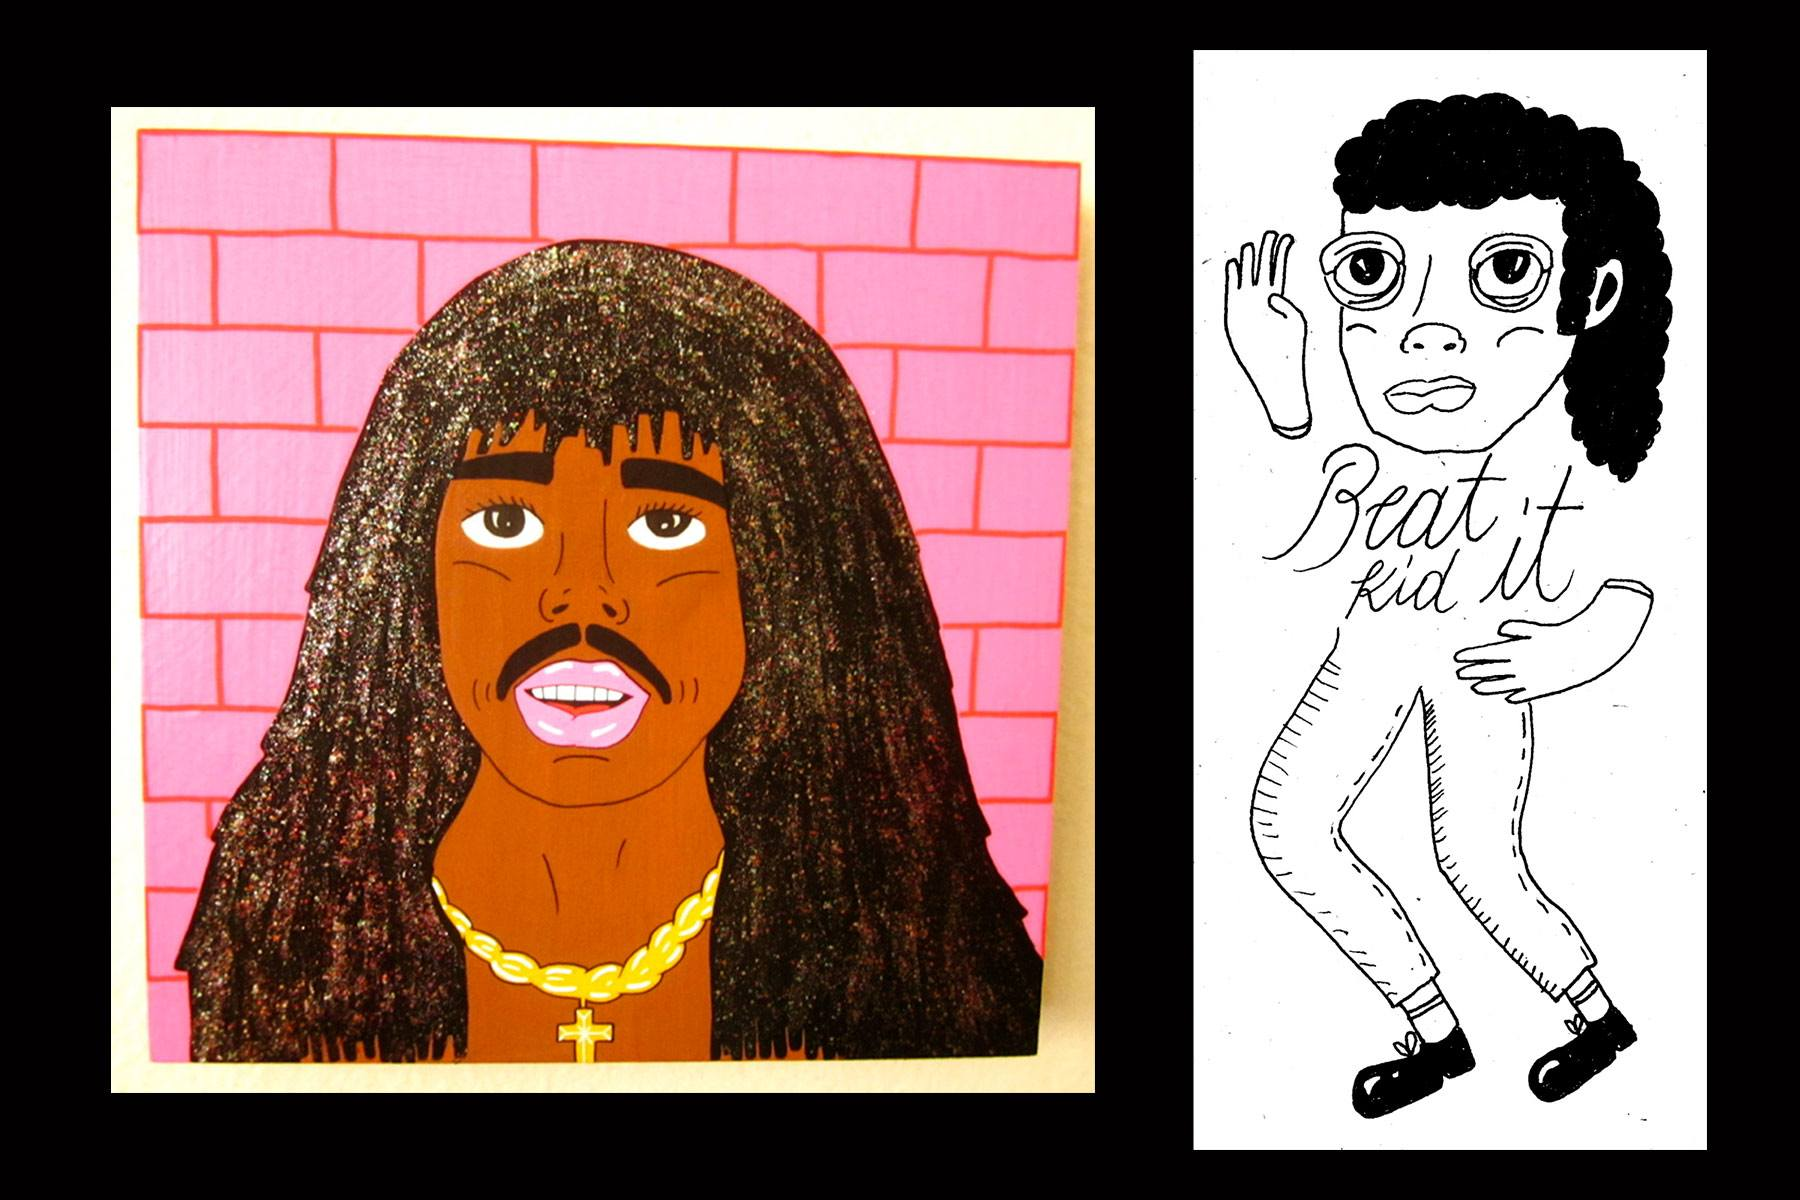 Rick James and Michael Jackson drawings courtesy of Pacolli. Ponyboy magazine.